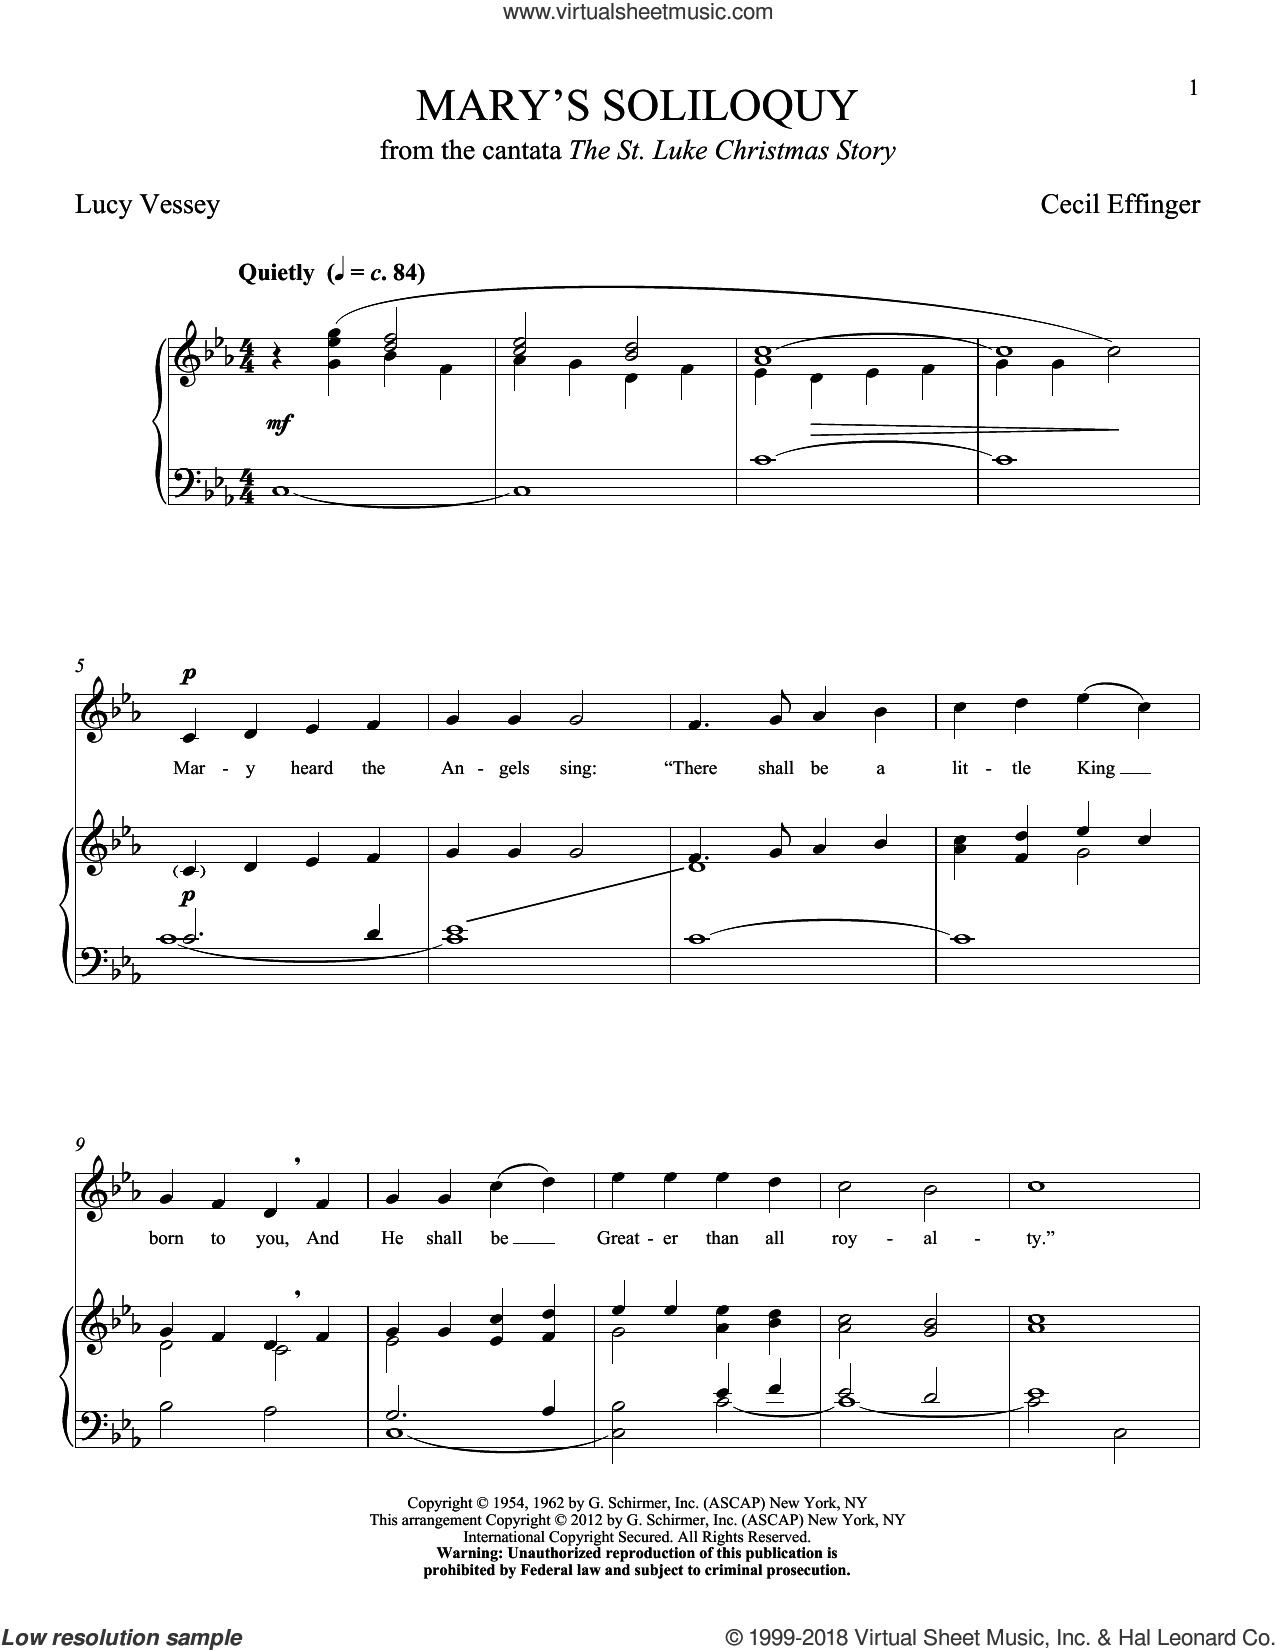 Mary's Soliloquy sheet music for voice and piano (High ) by Cecil Effinger. Score Image Preview.